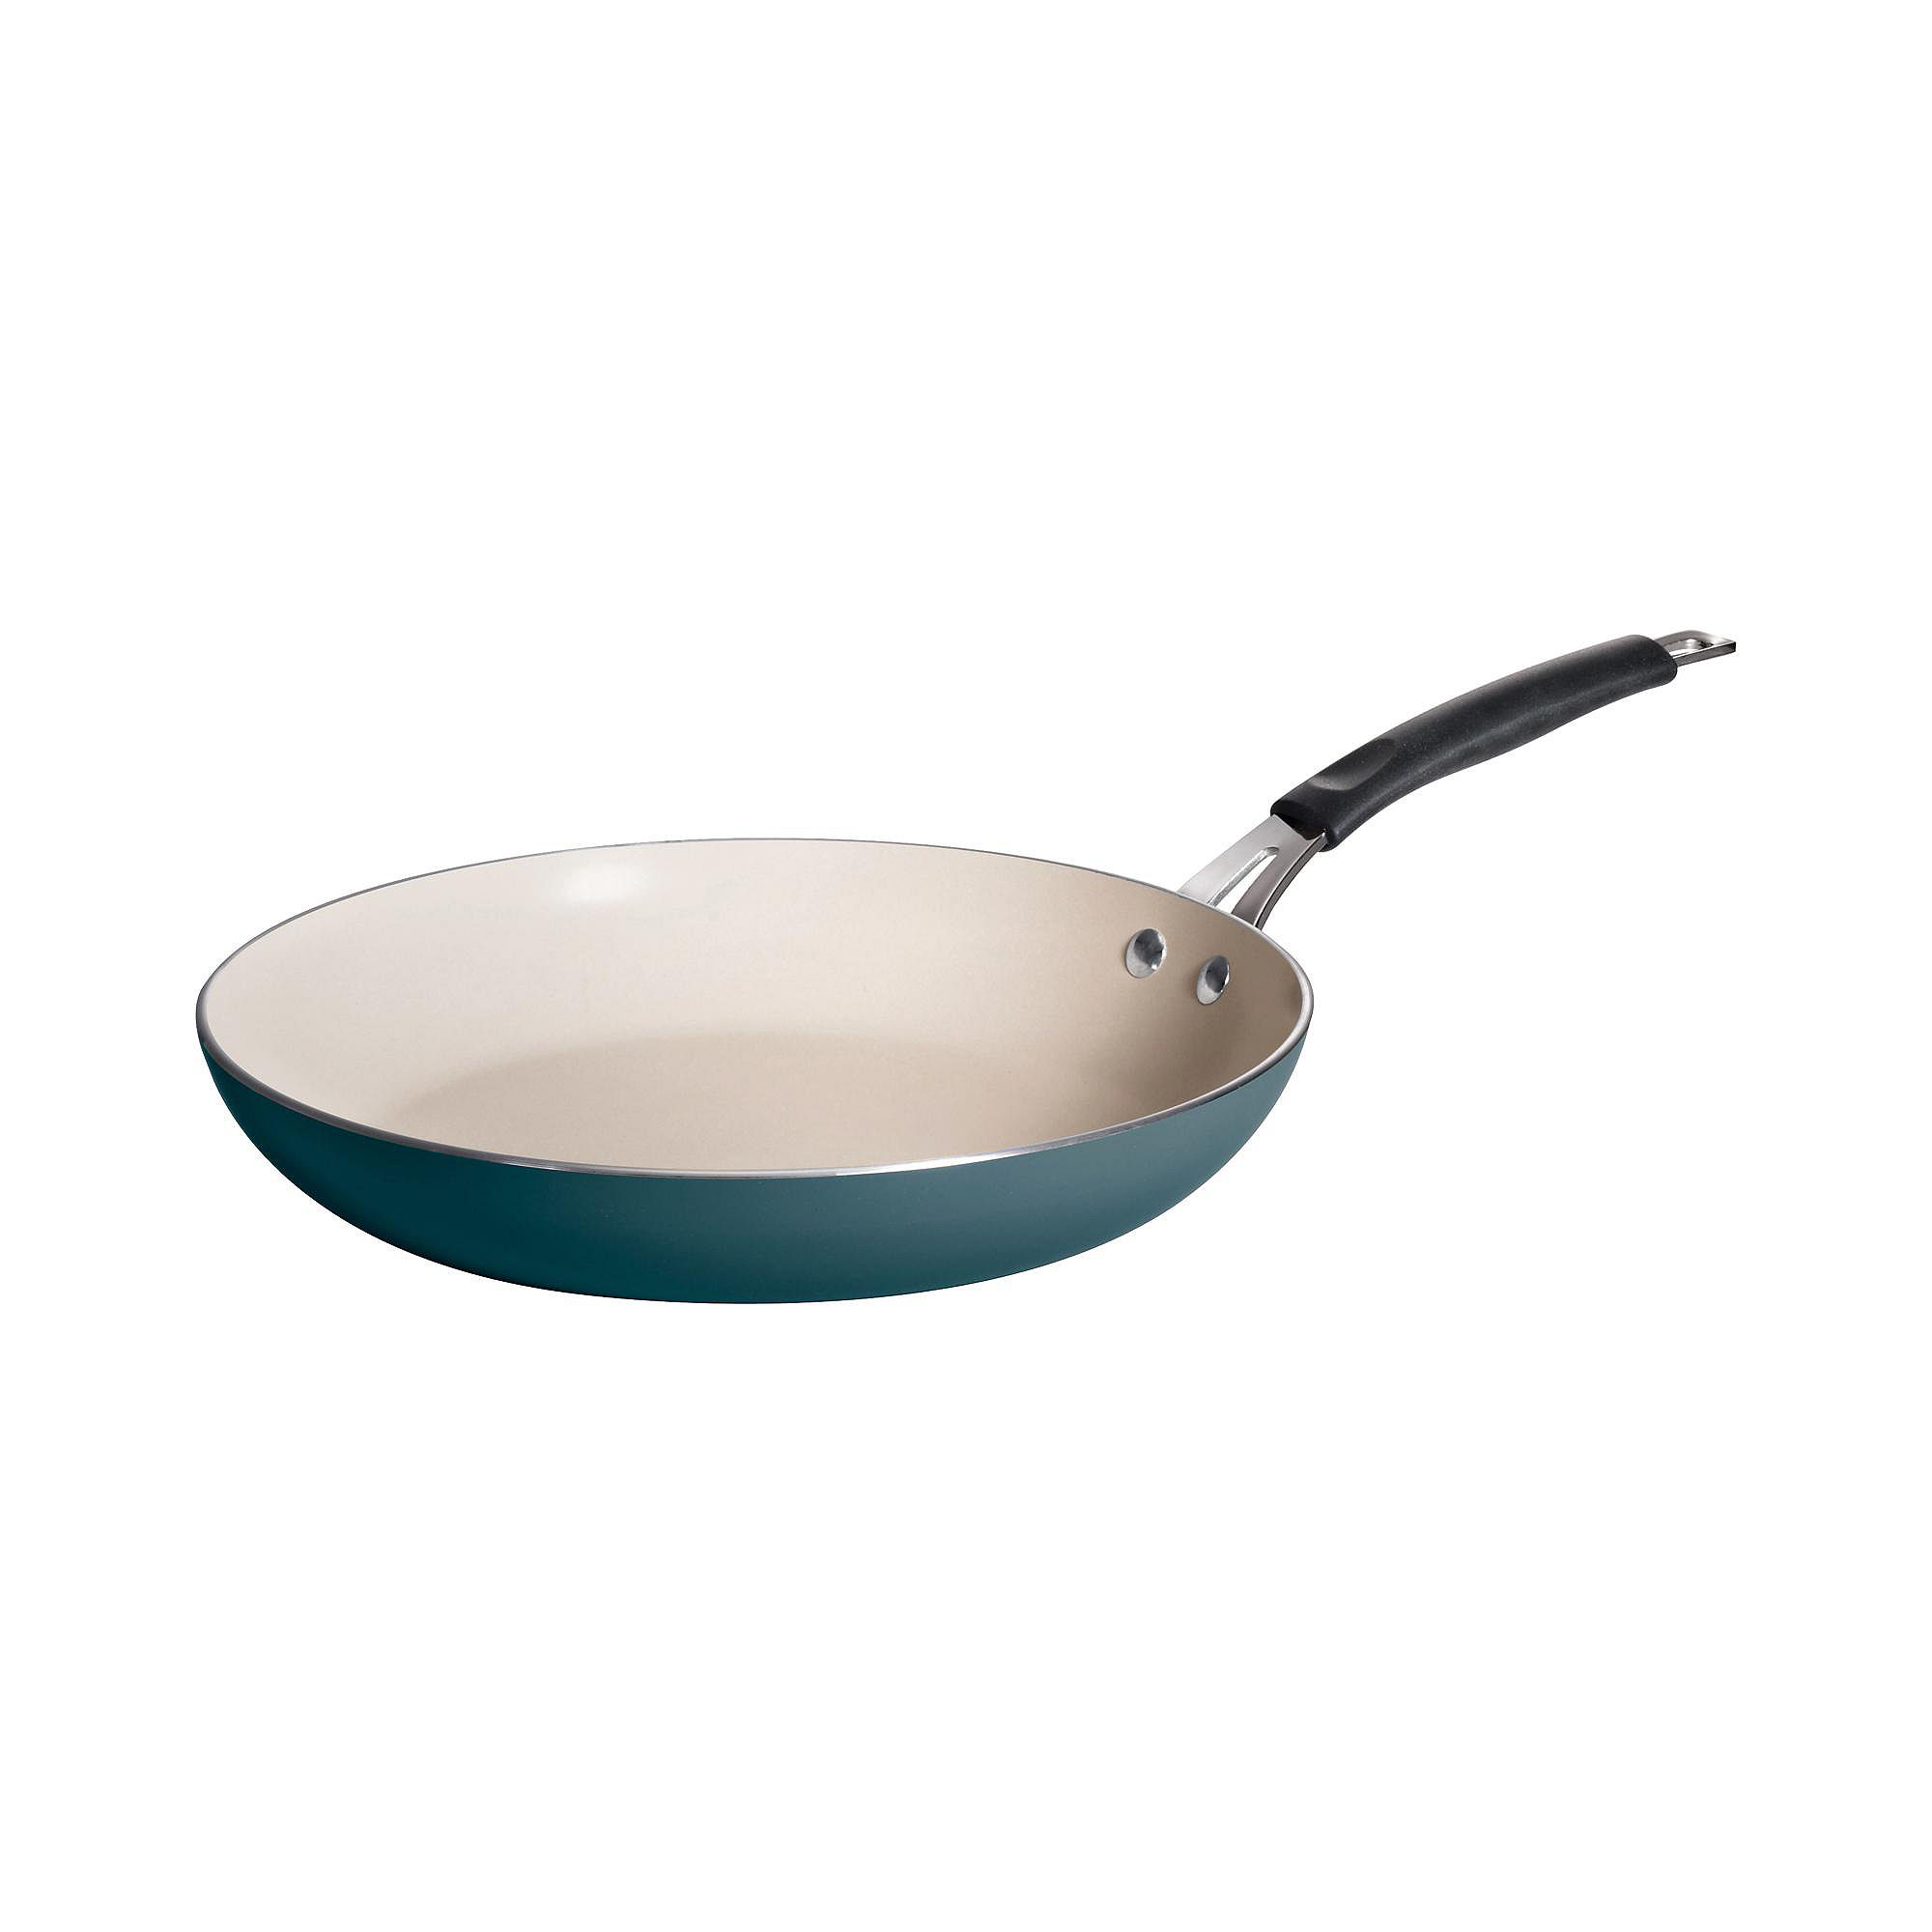 Tramontina Style Simple Cooking Fry Pan